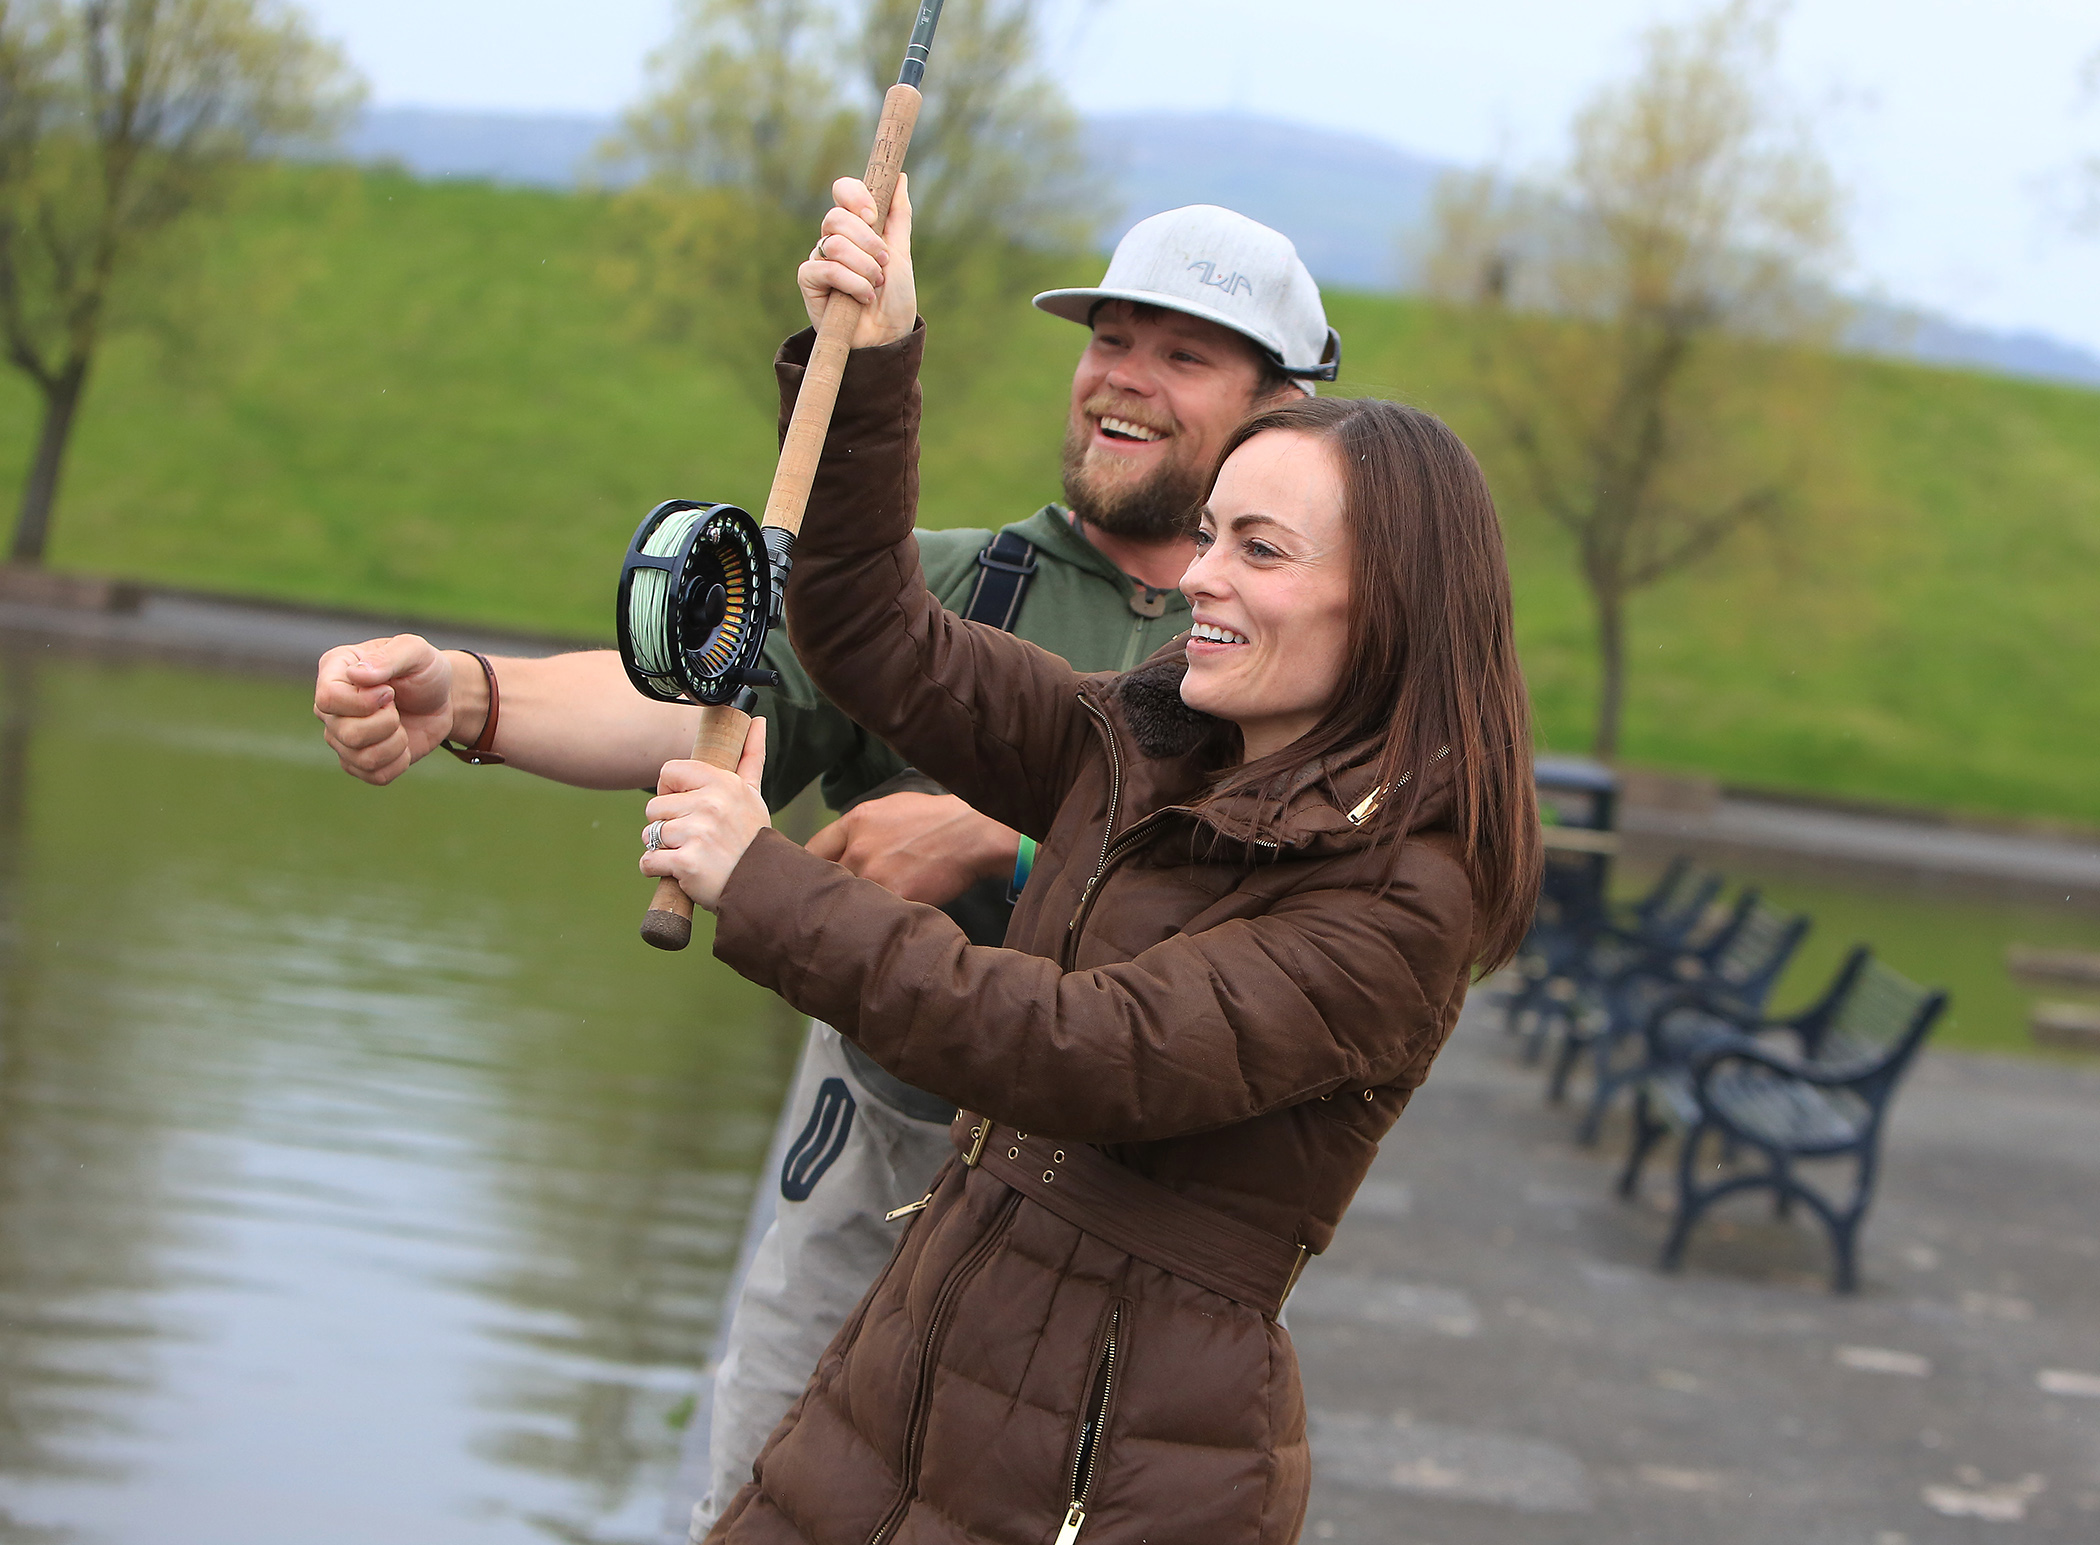 Waterworks spey casting competition 010705jc16